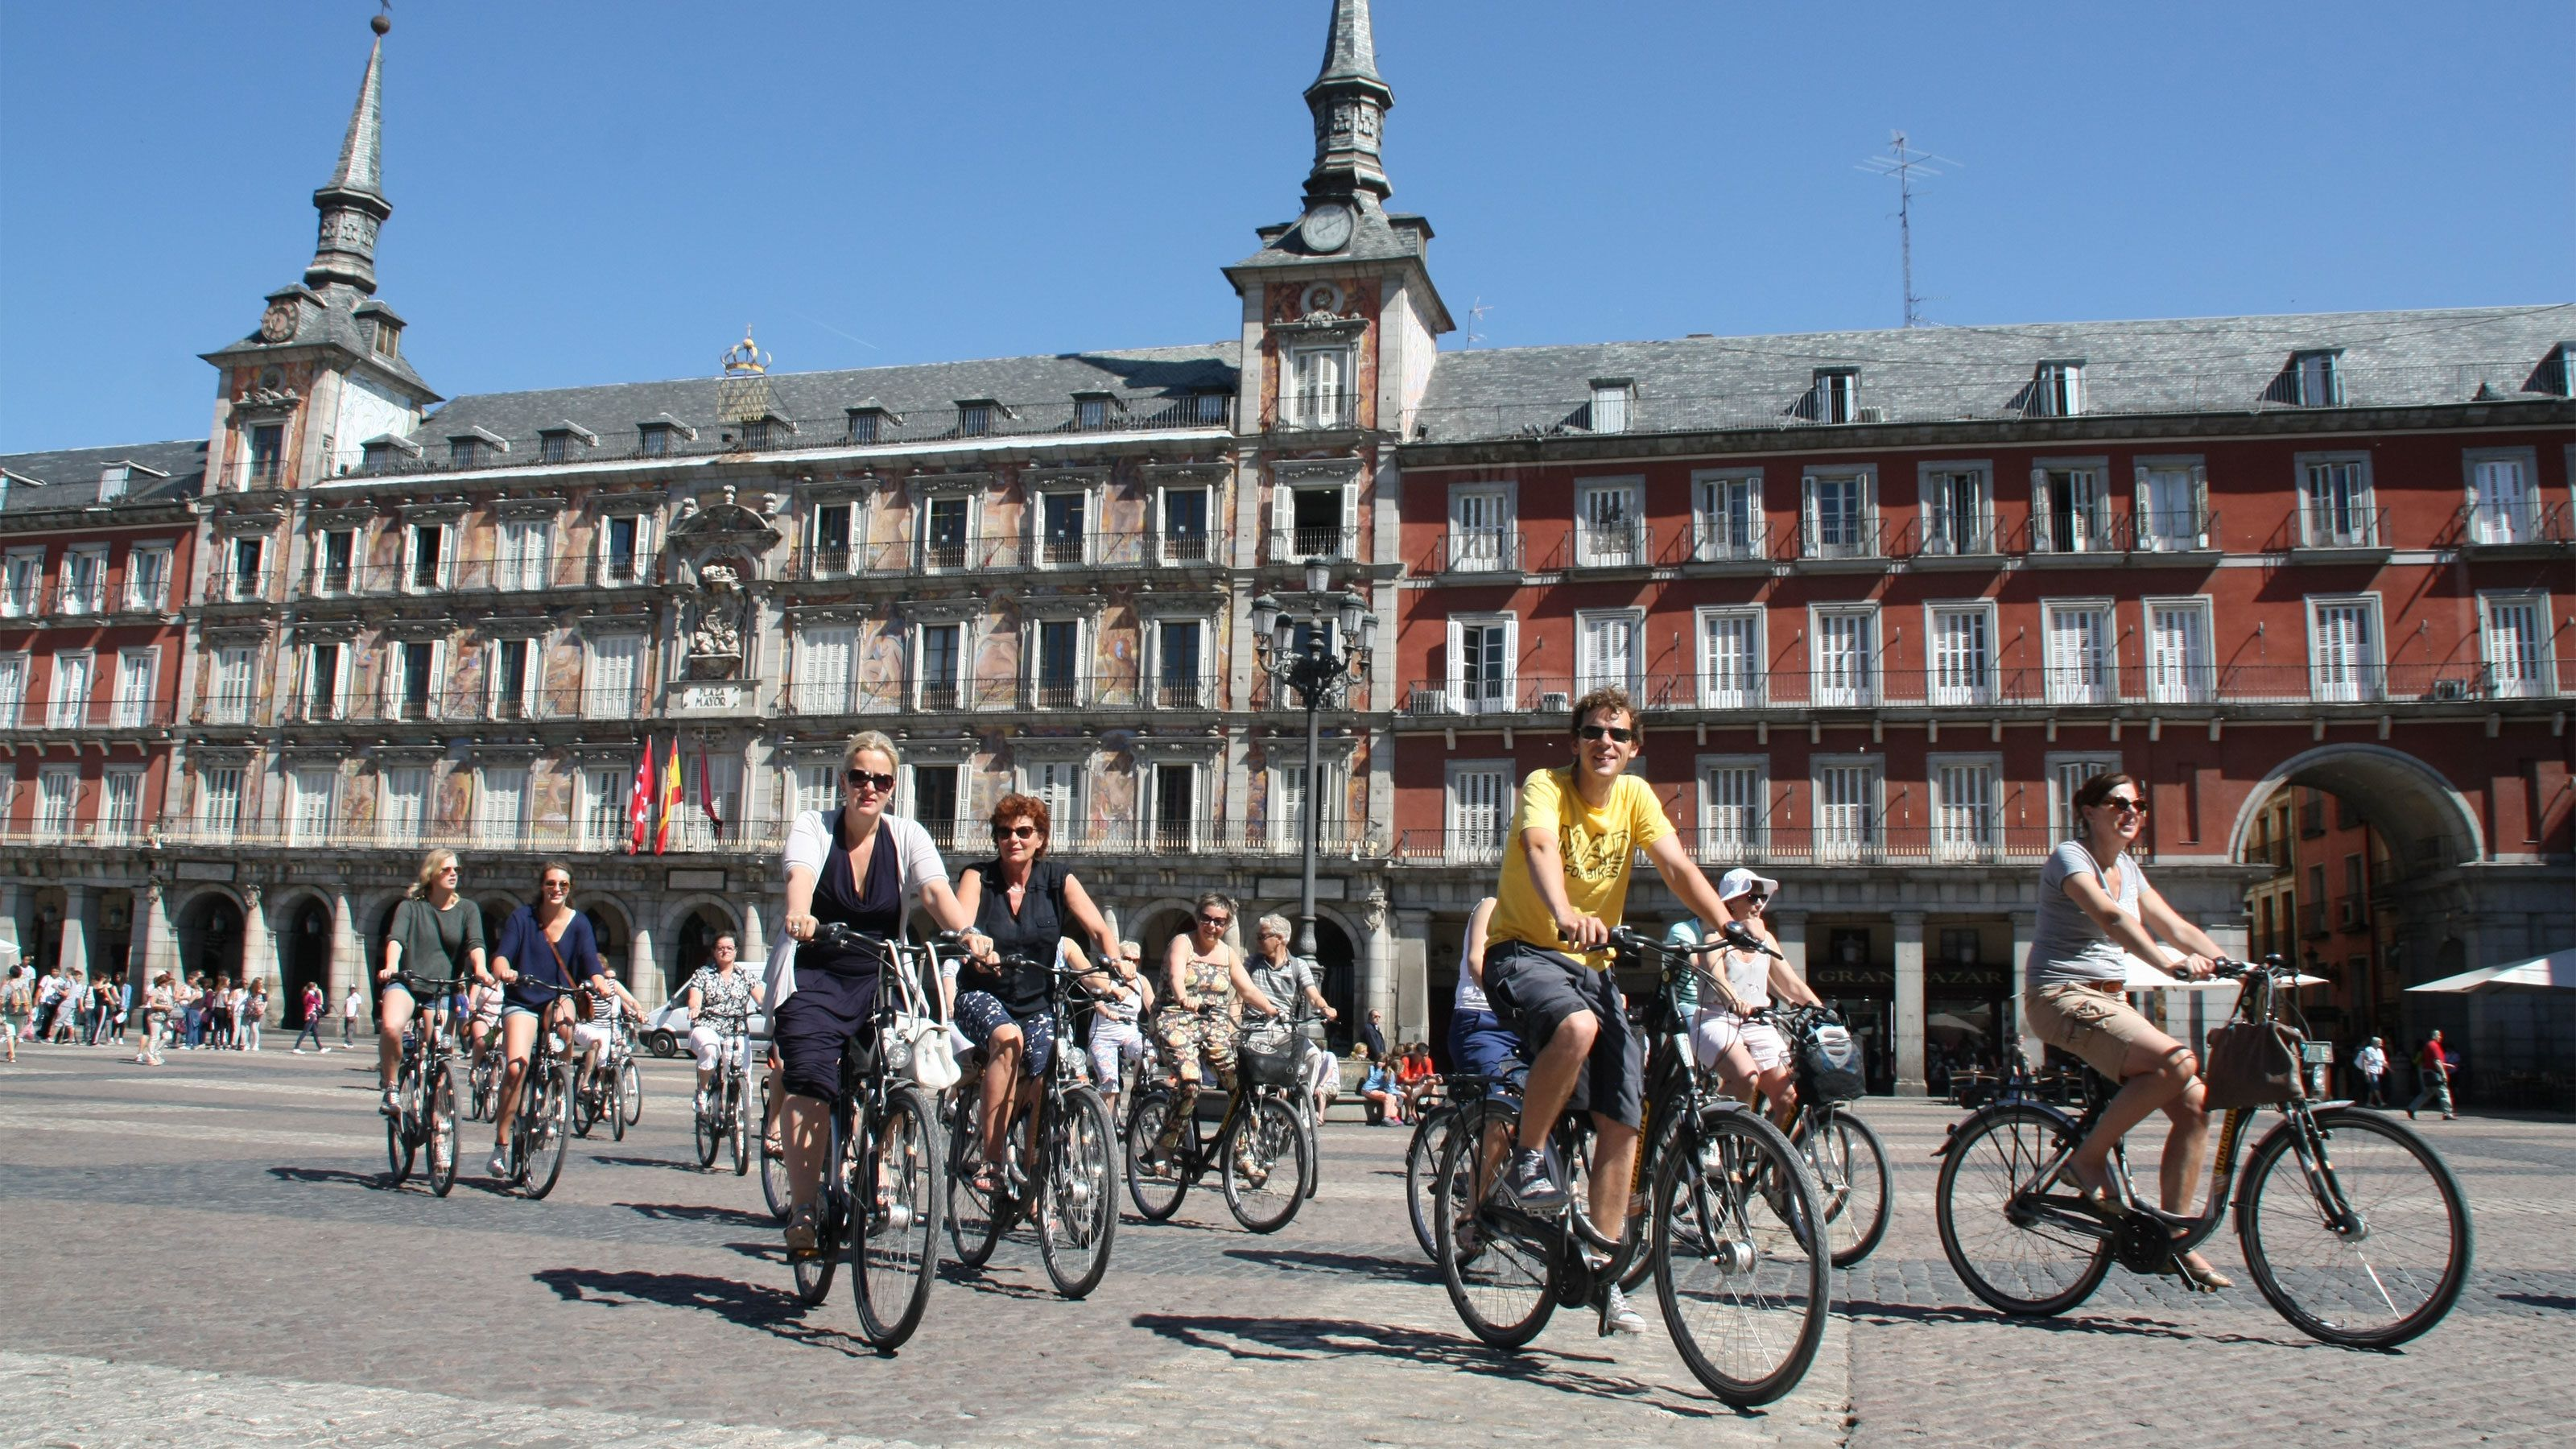 A group cycling through the Plaza Mayor Madrid during the daytime